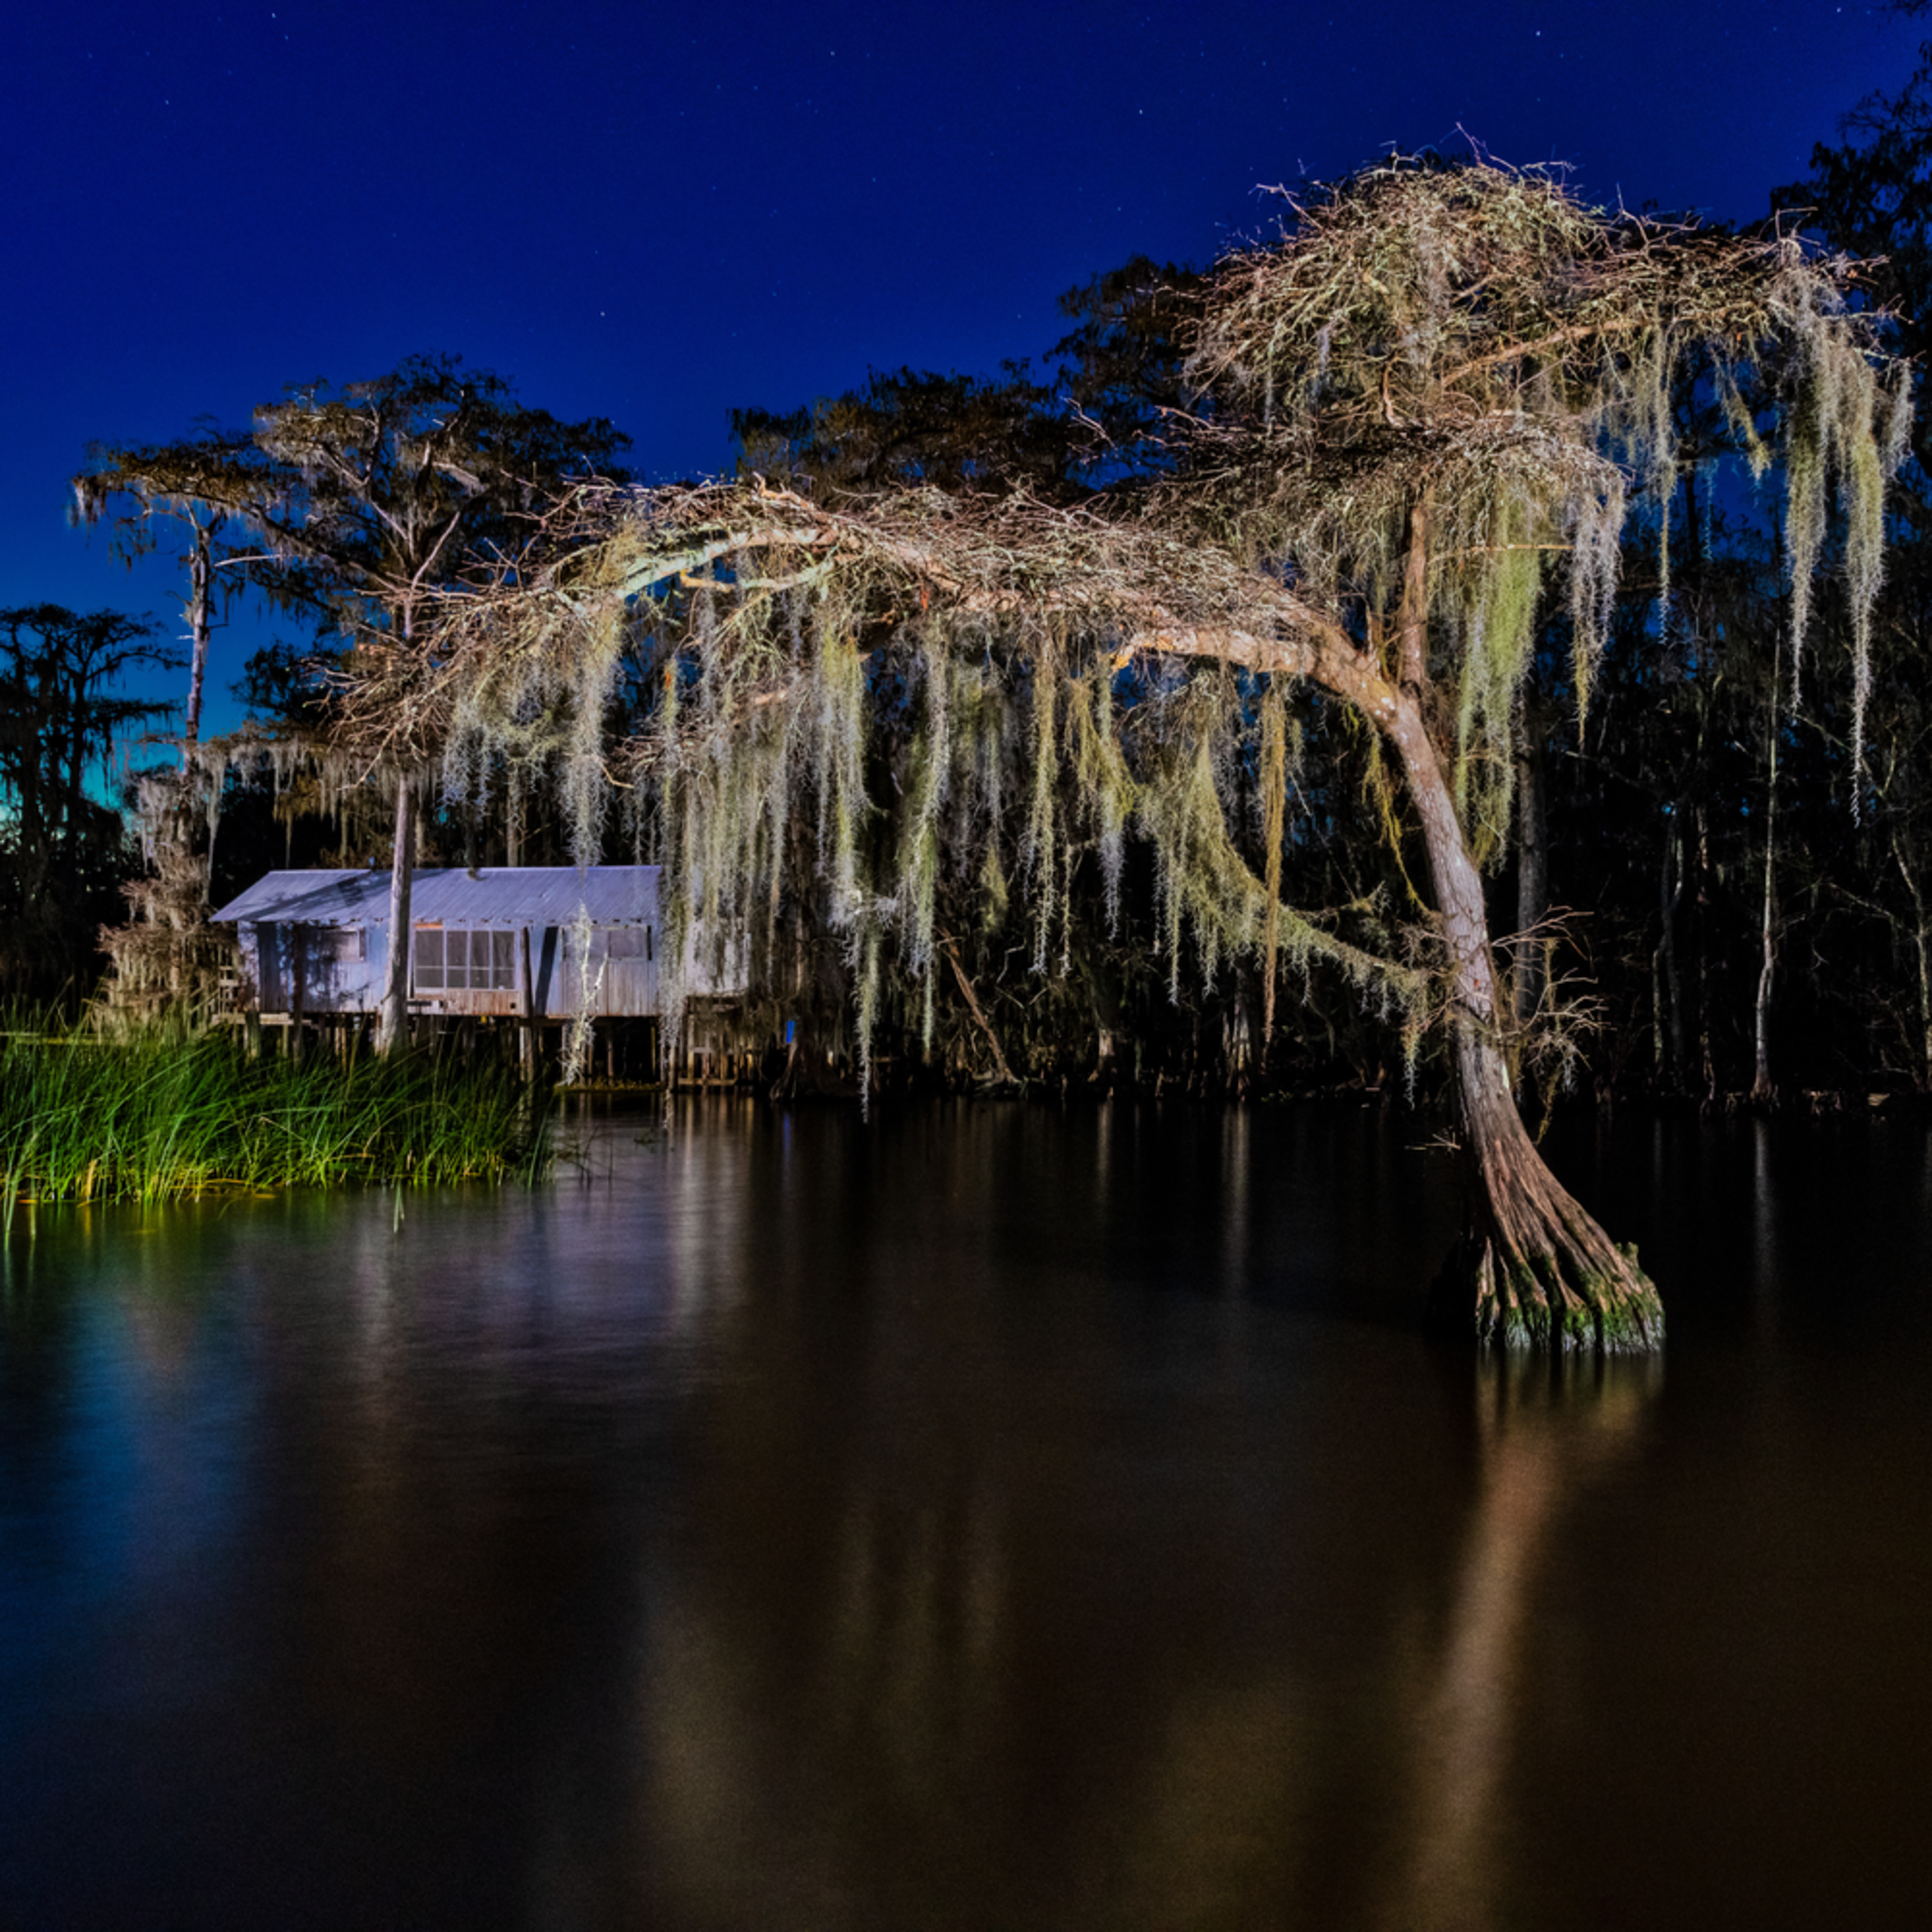 Andy crawford photography 190106 lake maurepas swamp 001 uucqpp